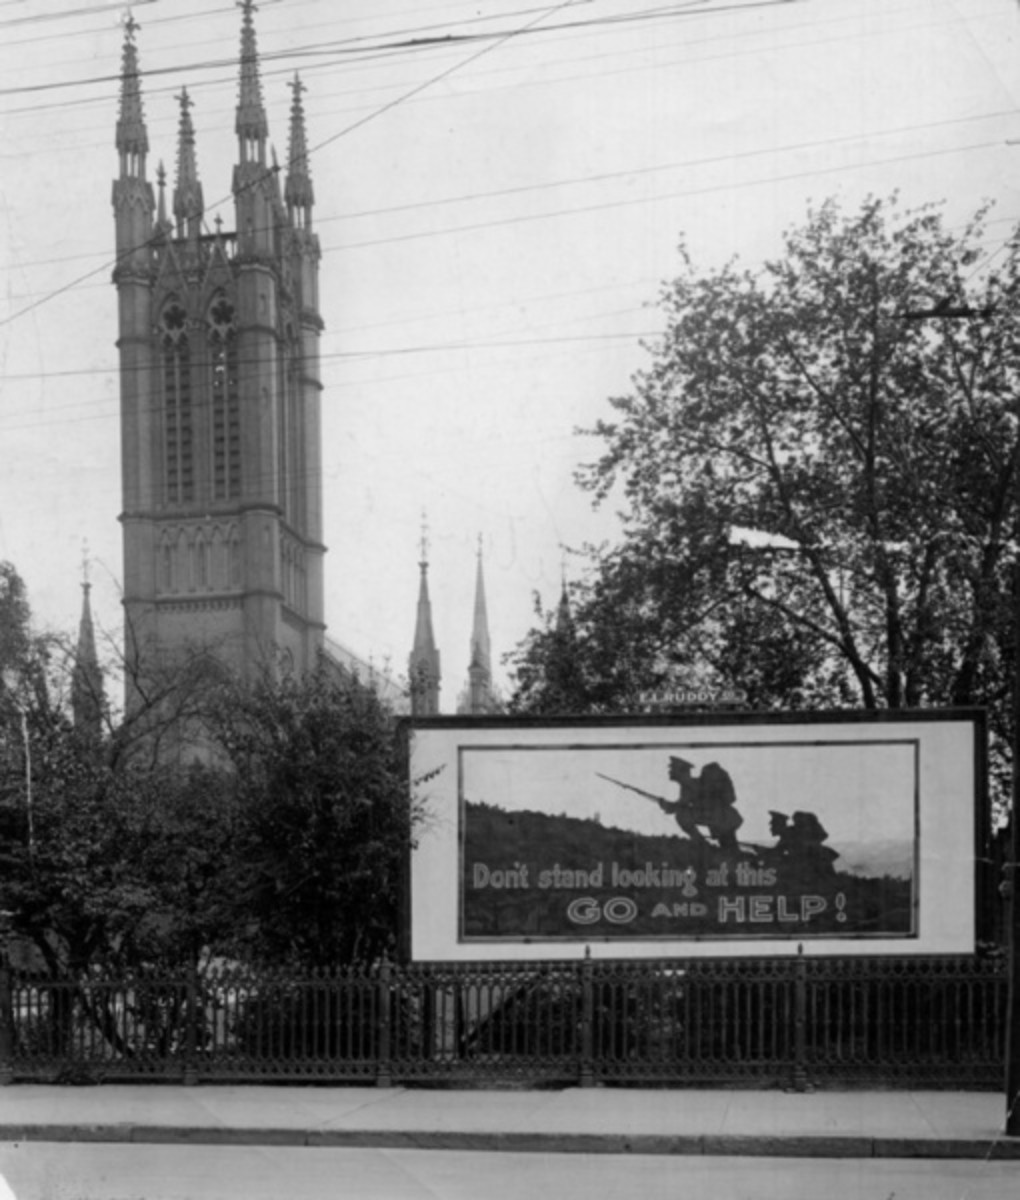 A recruitment poster outside a church in Toronto, Canada, 1914.  The message is direct:  Don't stand looking at this:  GO and HELP!